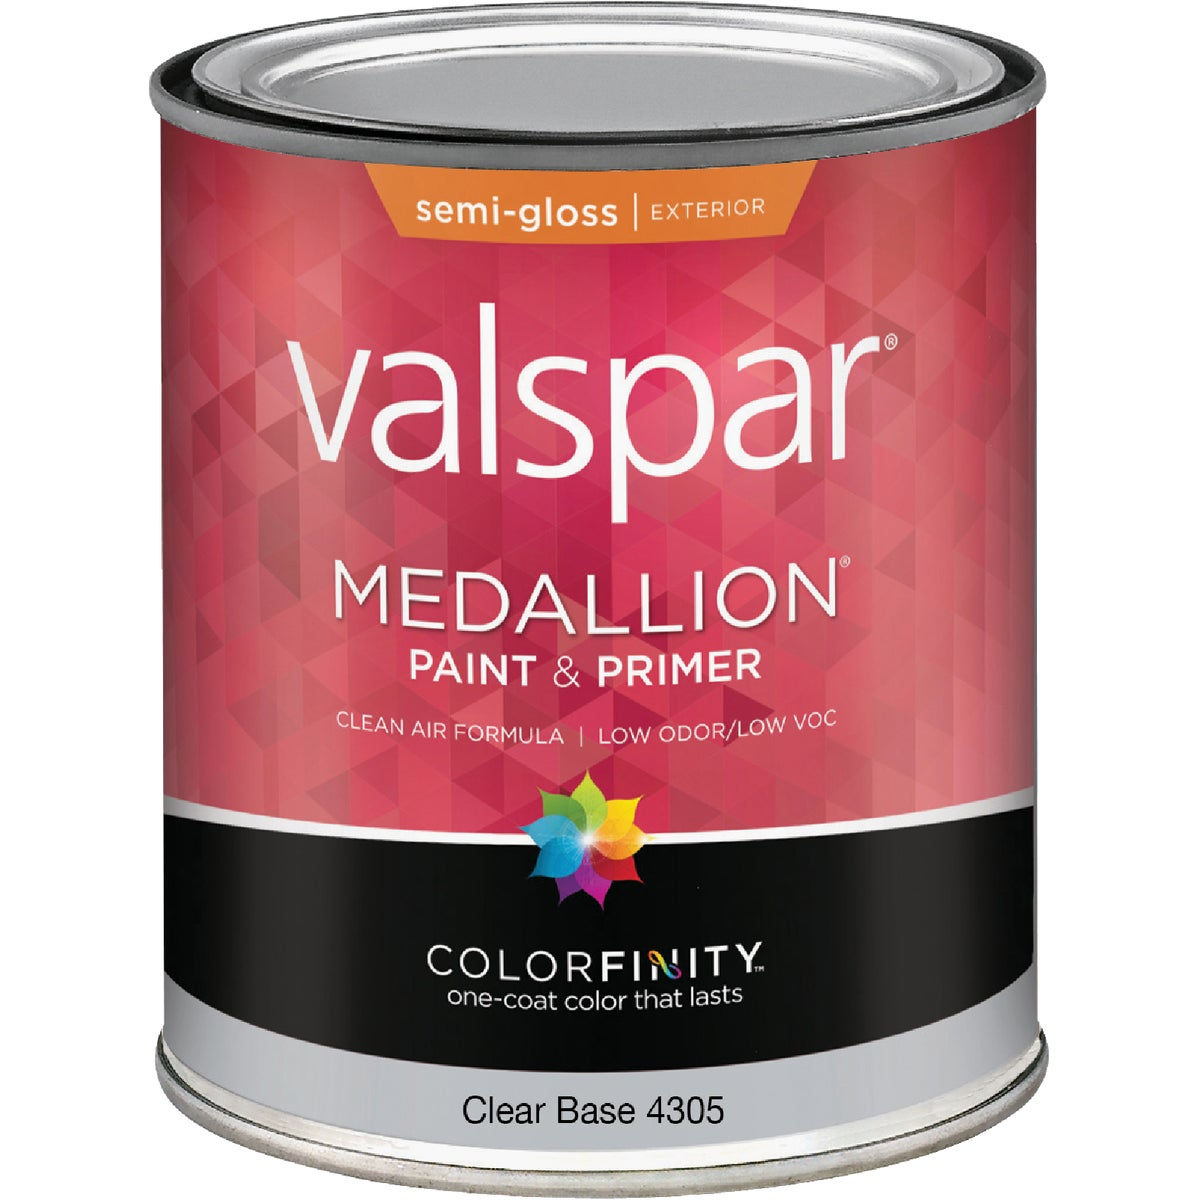 EXT S/G CLEAR BS PAINT - 027.0004305.005 by Valspar Corp